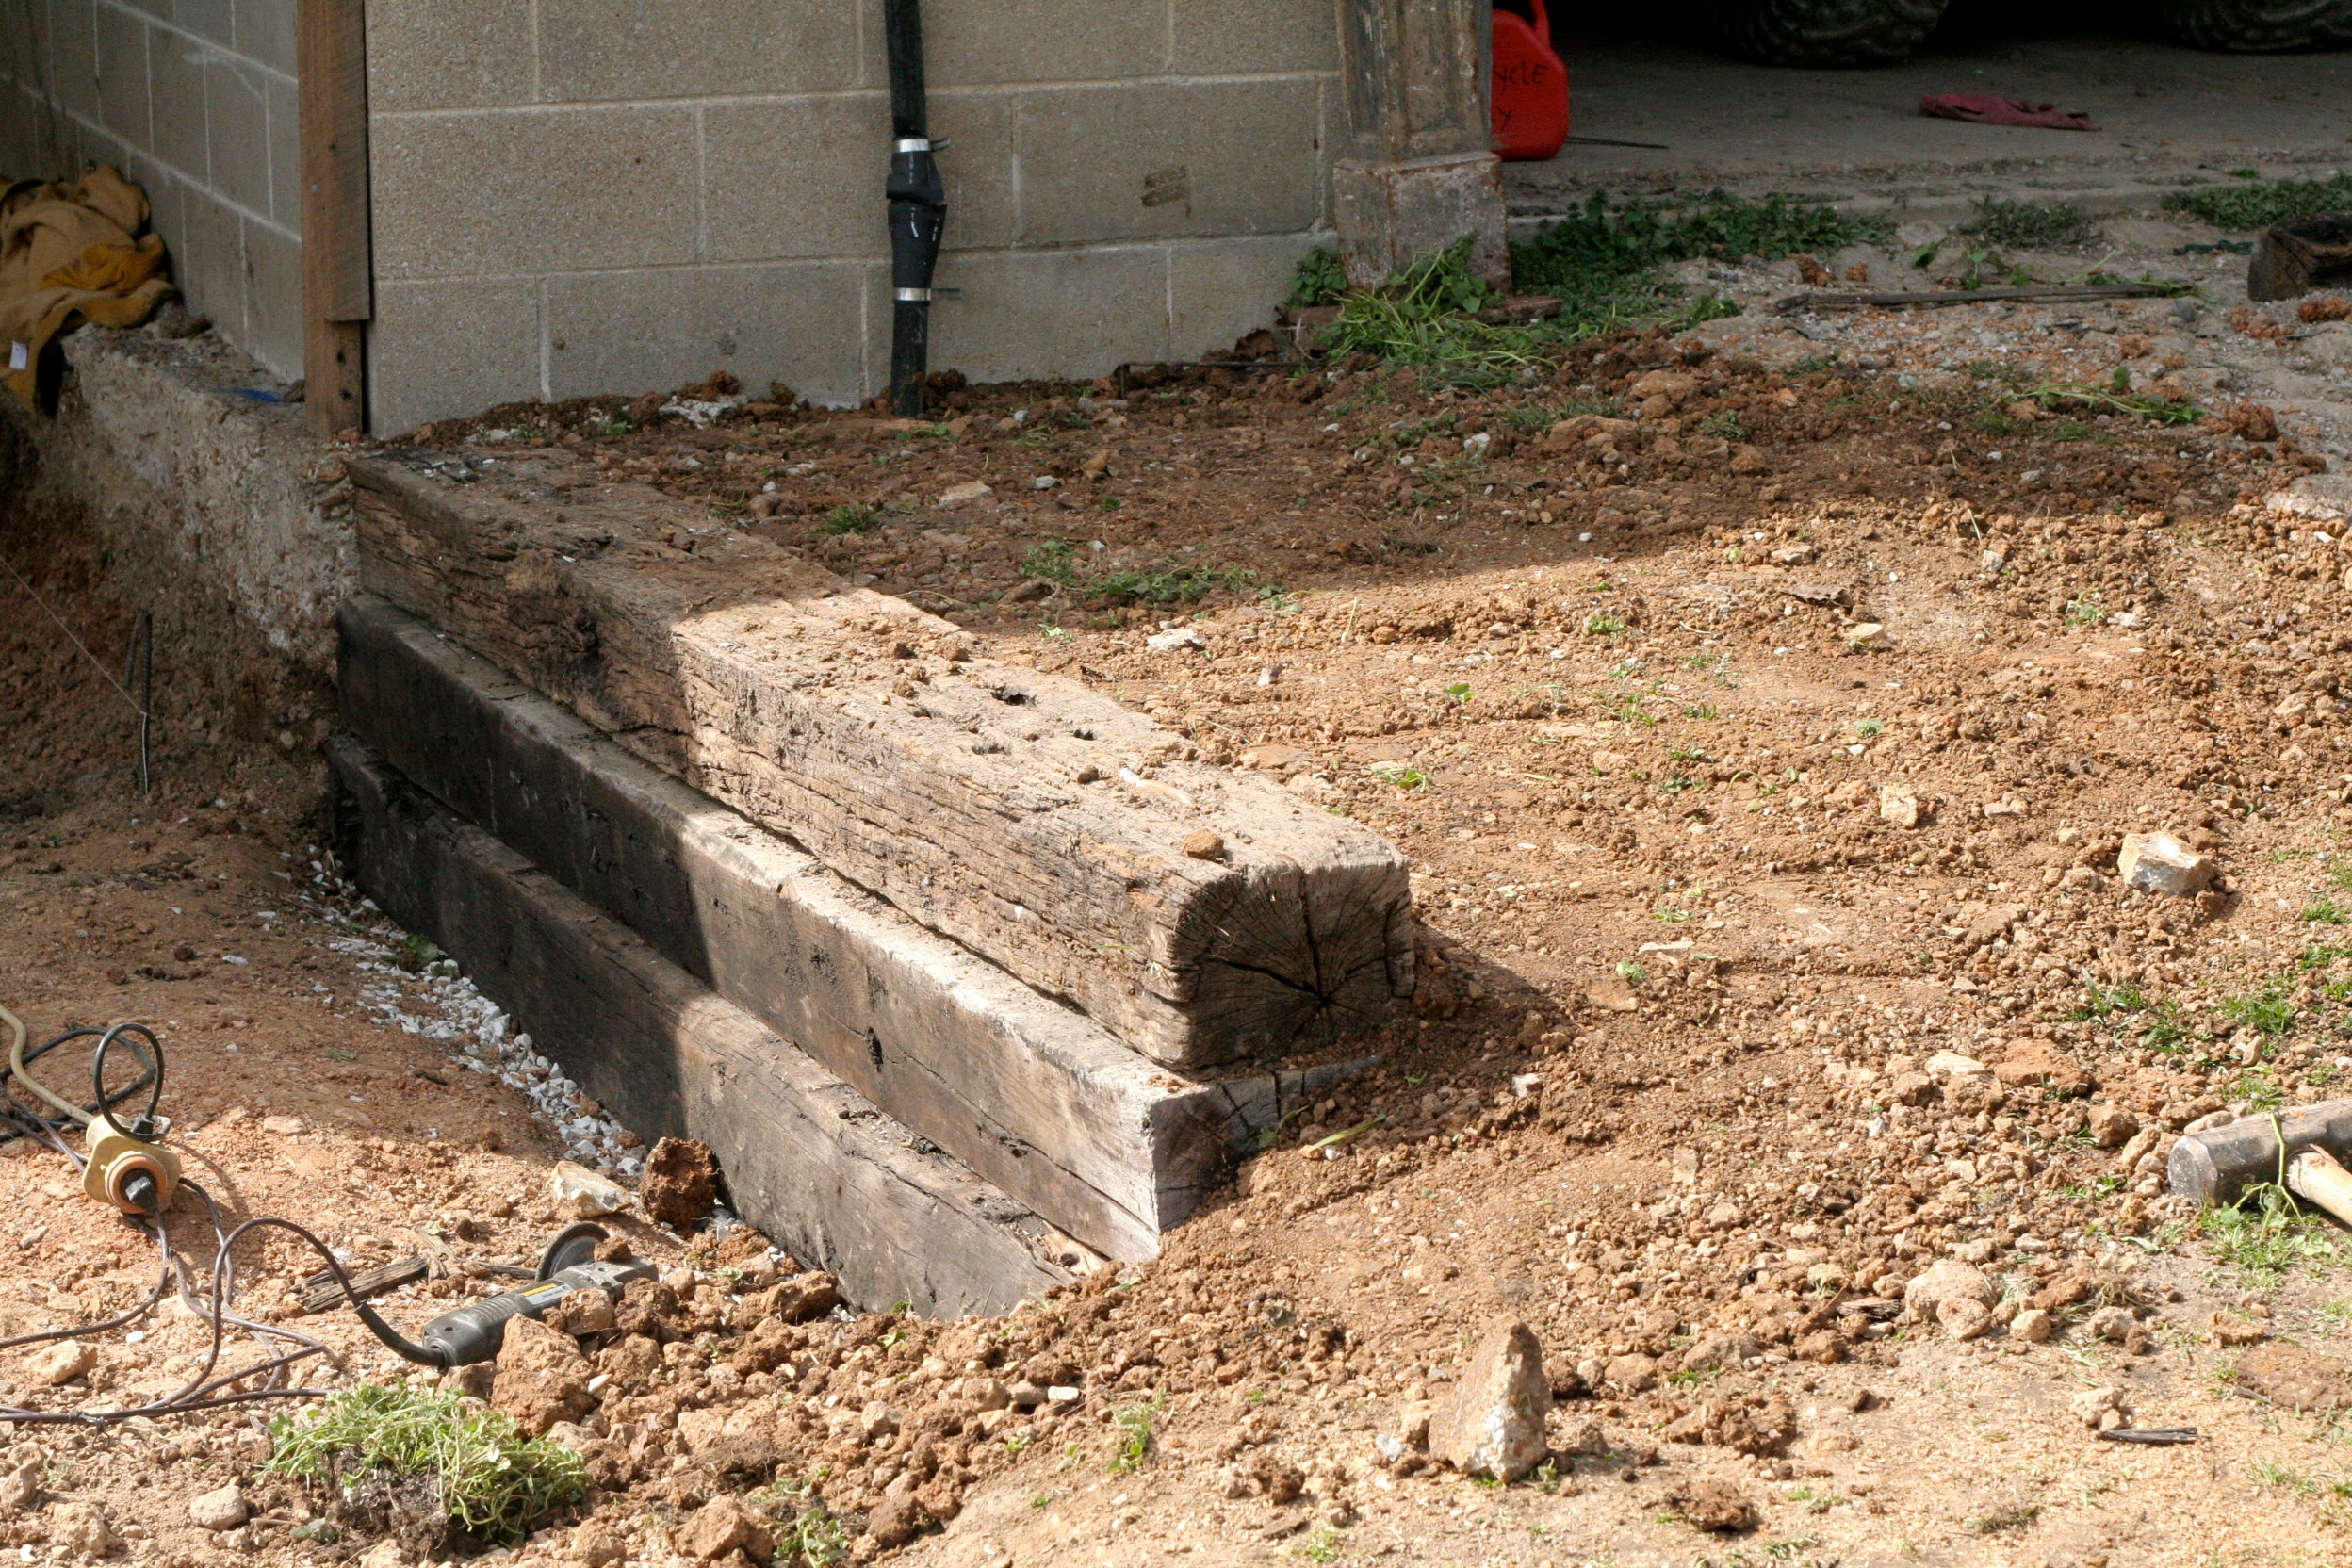 How To Build A Railroad Tie Retaining Wall 10 Steps With Pictures Instructables